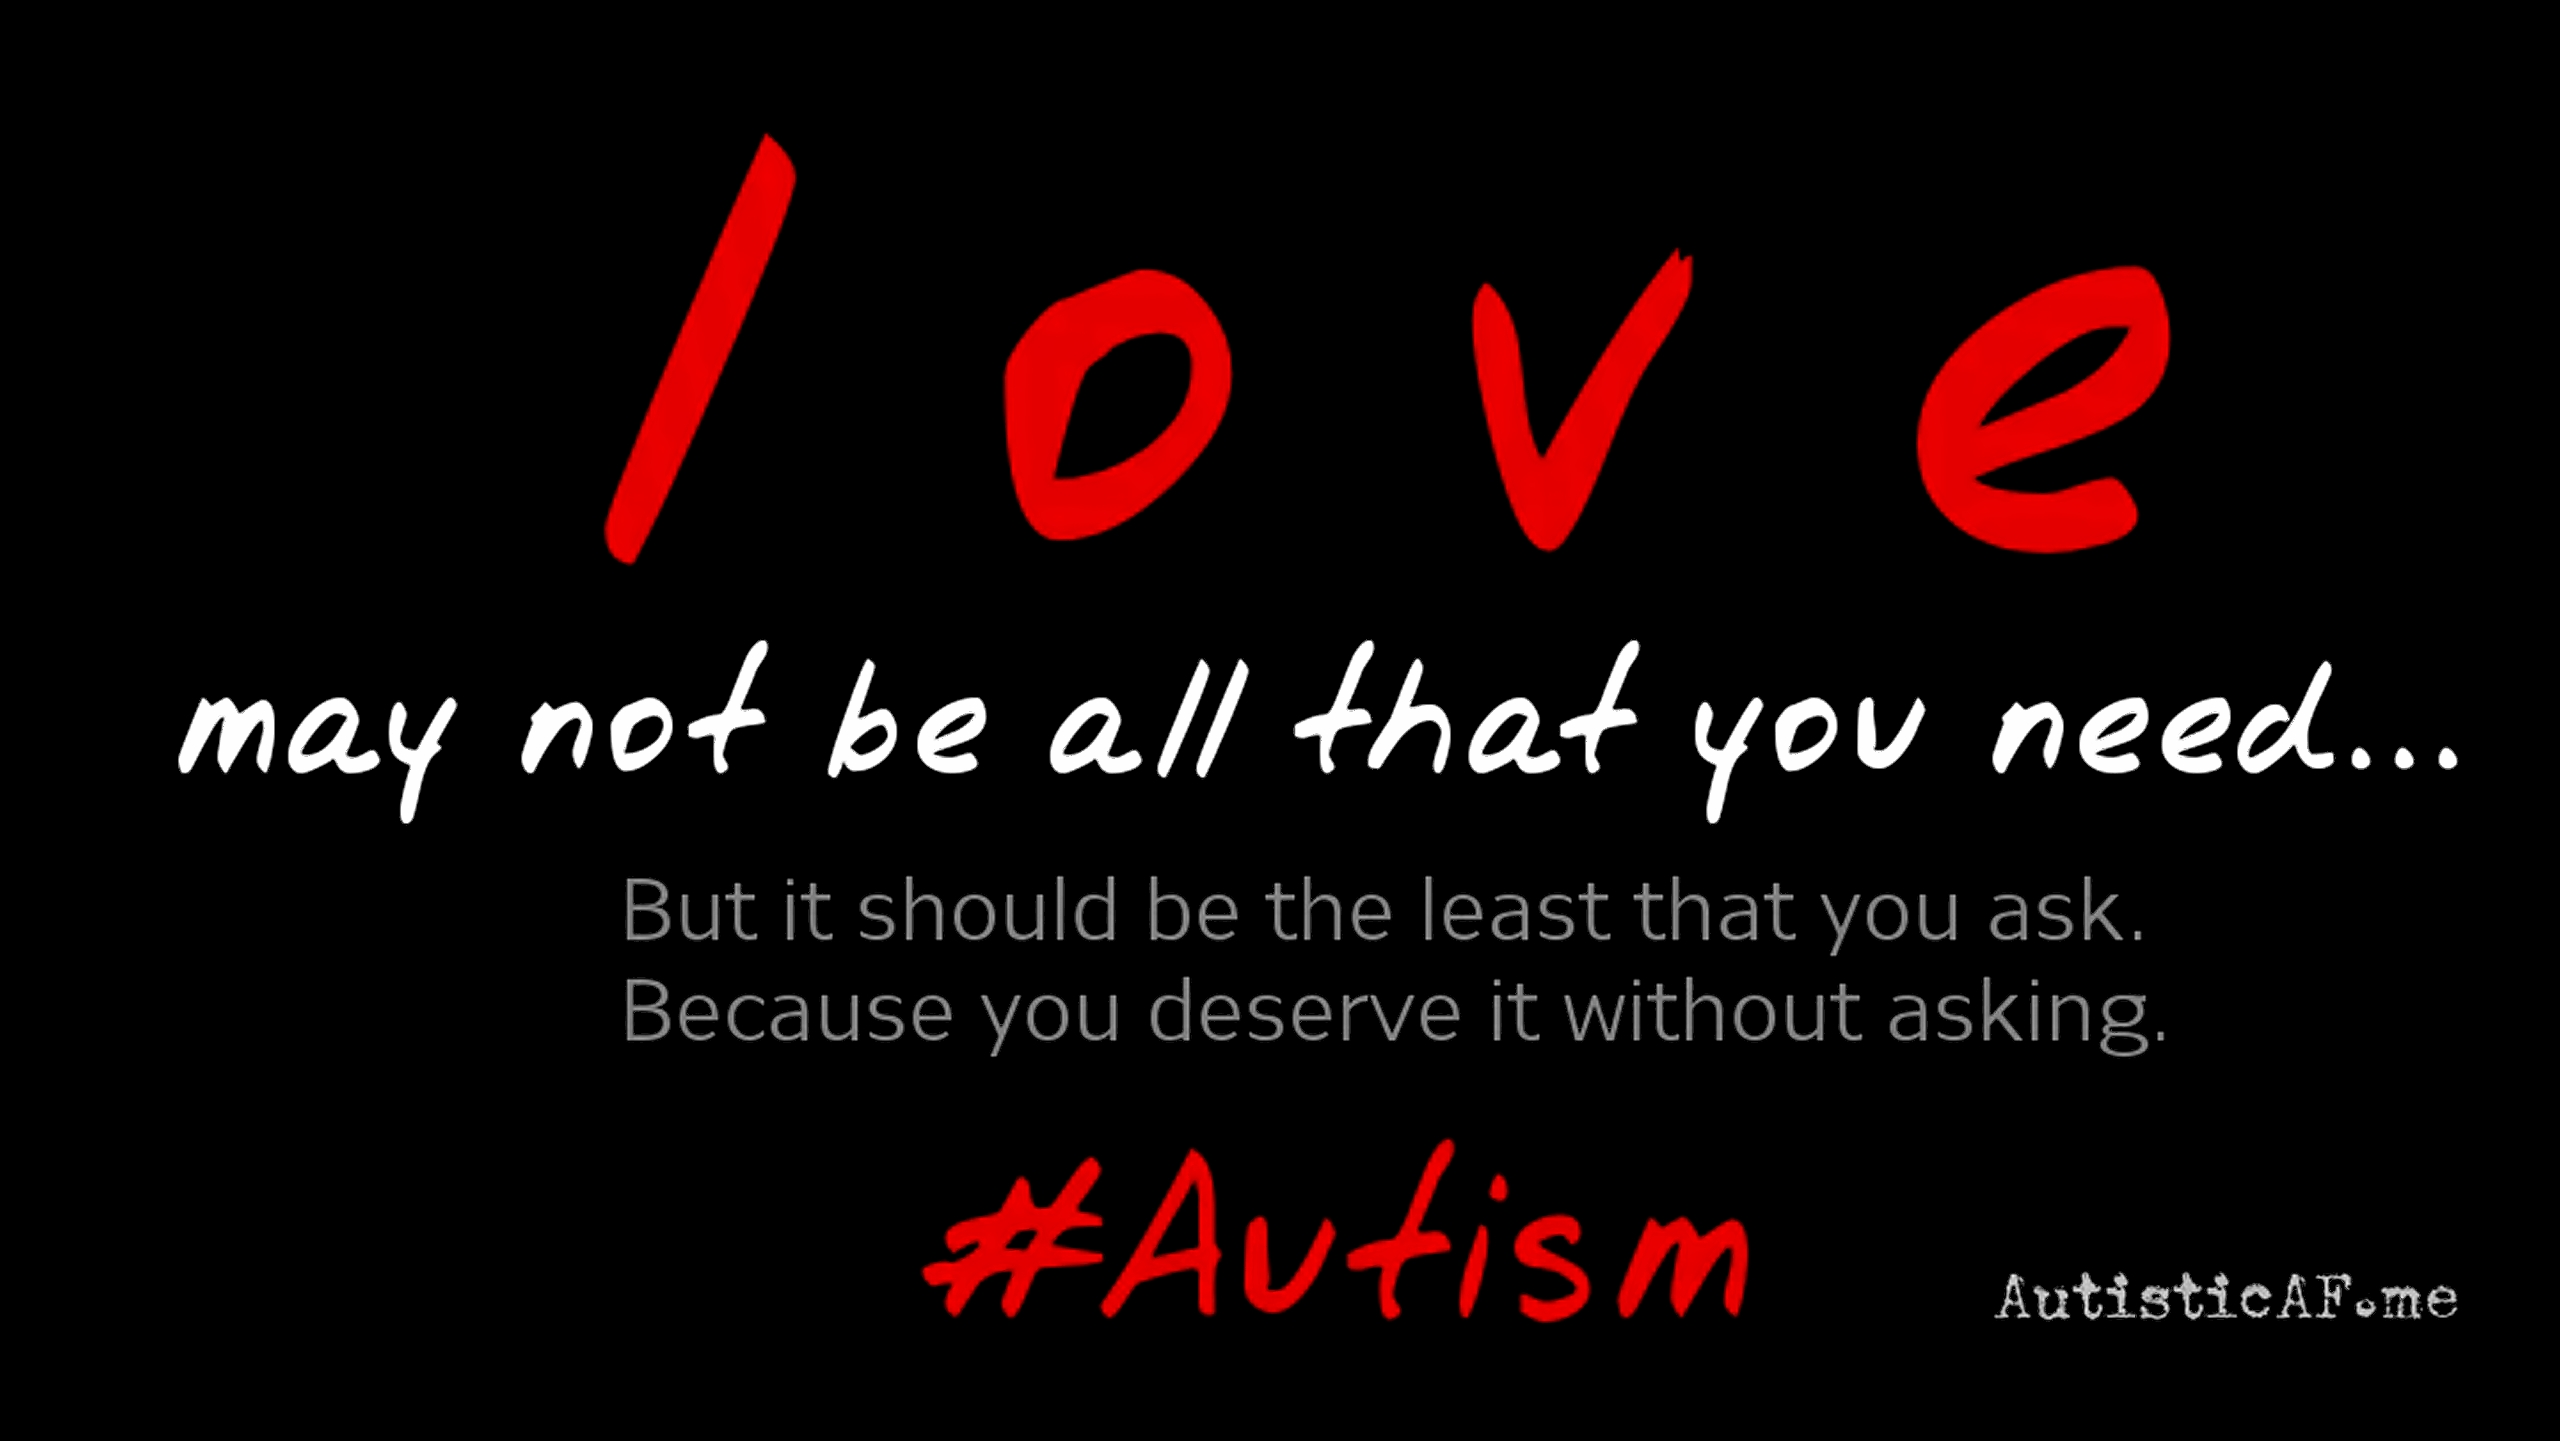 """Love #1,"" original text meme. ""Love may not be all that you need... But it should be the least that you ask. Because you deserve it without asking. #Autism"""